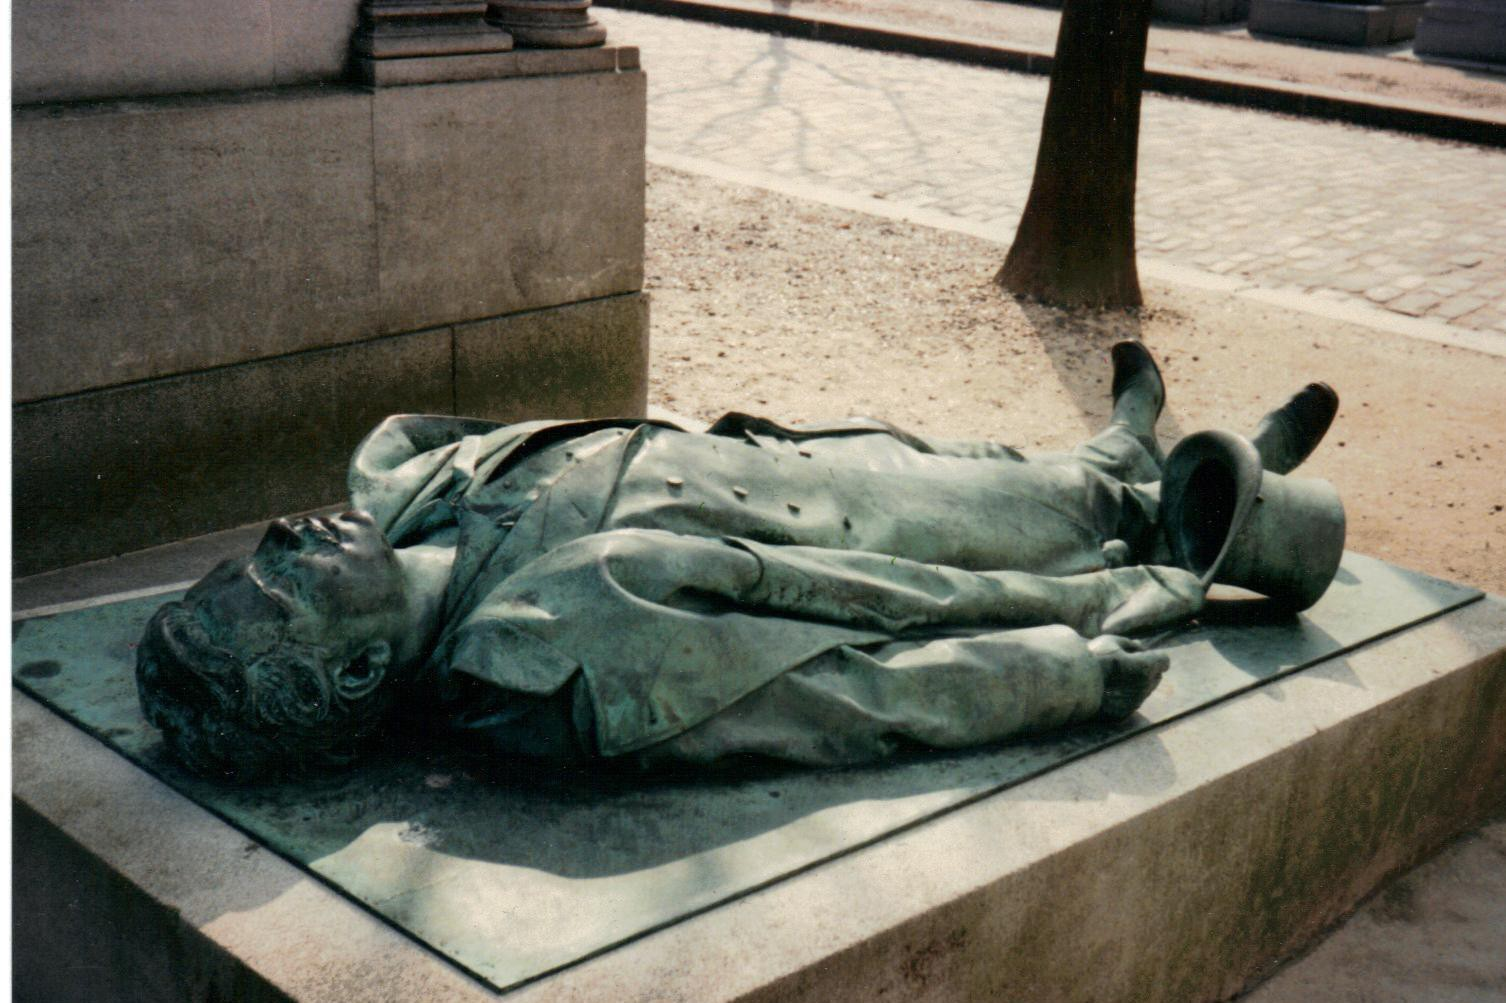 Victor Noir's tombstone depicts him as he was shot dead.